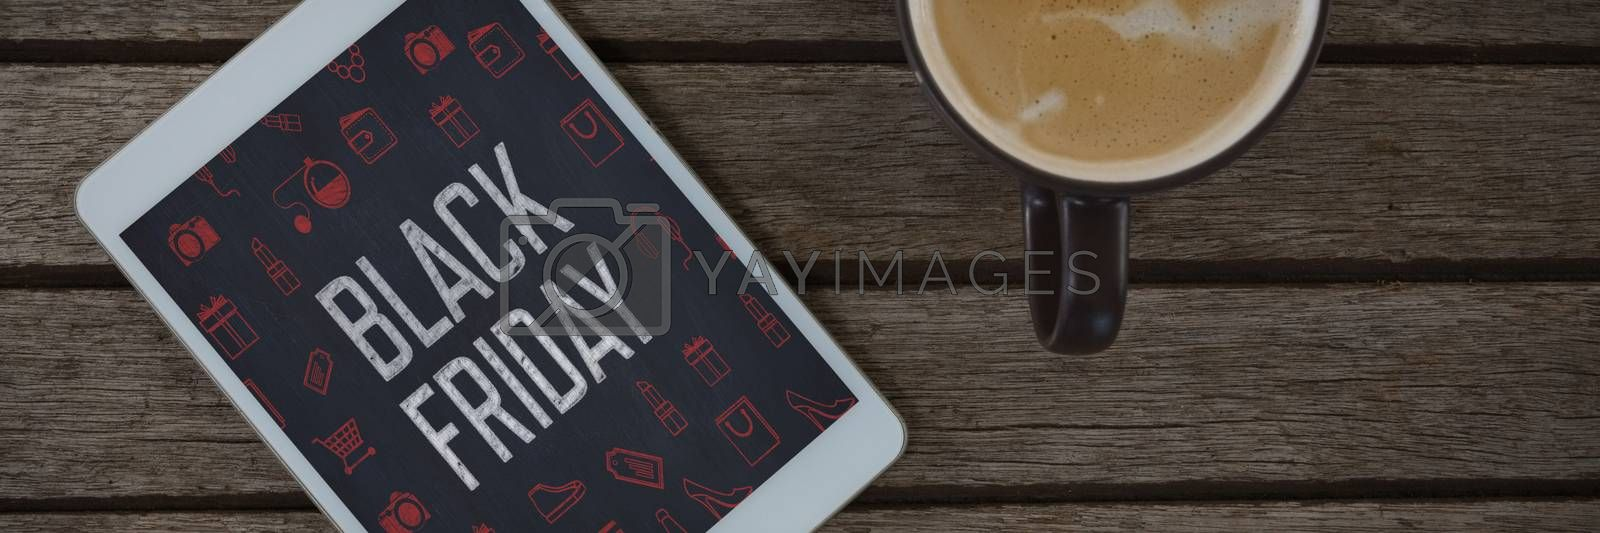 Digital tablet and cup of coffee on wooden plank against black friday advertisement